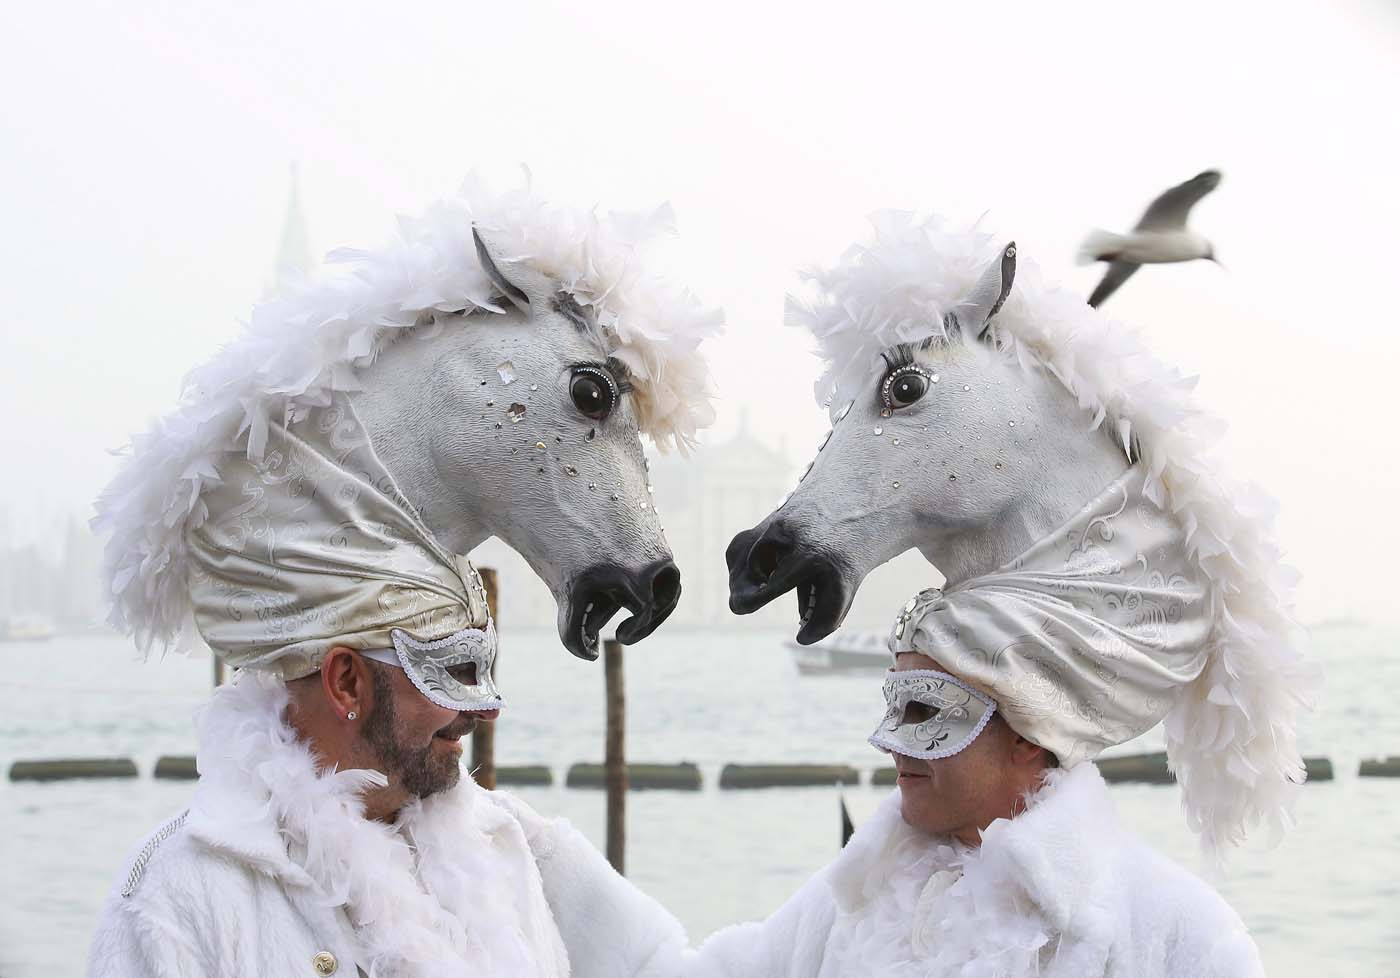 Masked revellers pose at San Marco Piazza during the Venice Carnival, January 31, 2016. REUTERS/Alessandro Bianchi